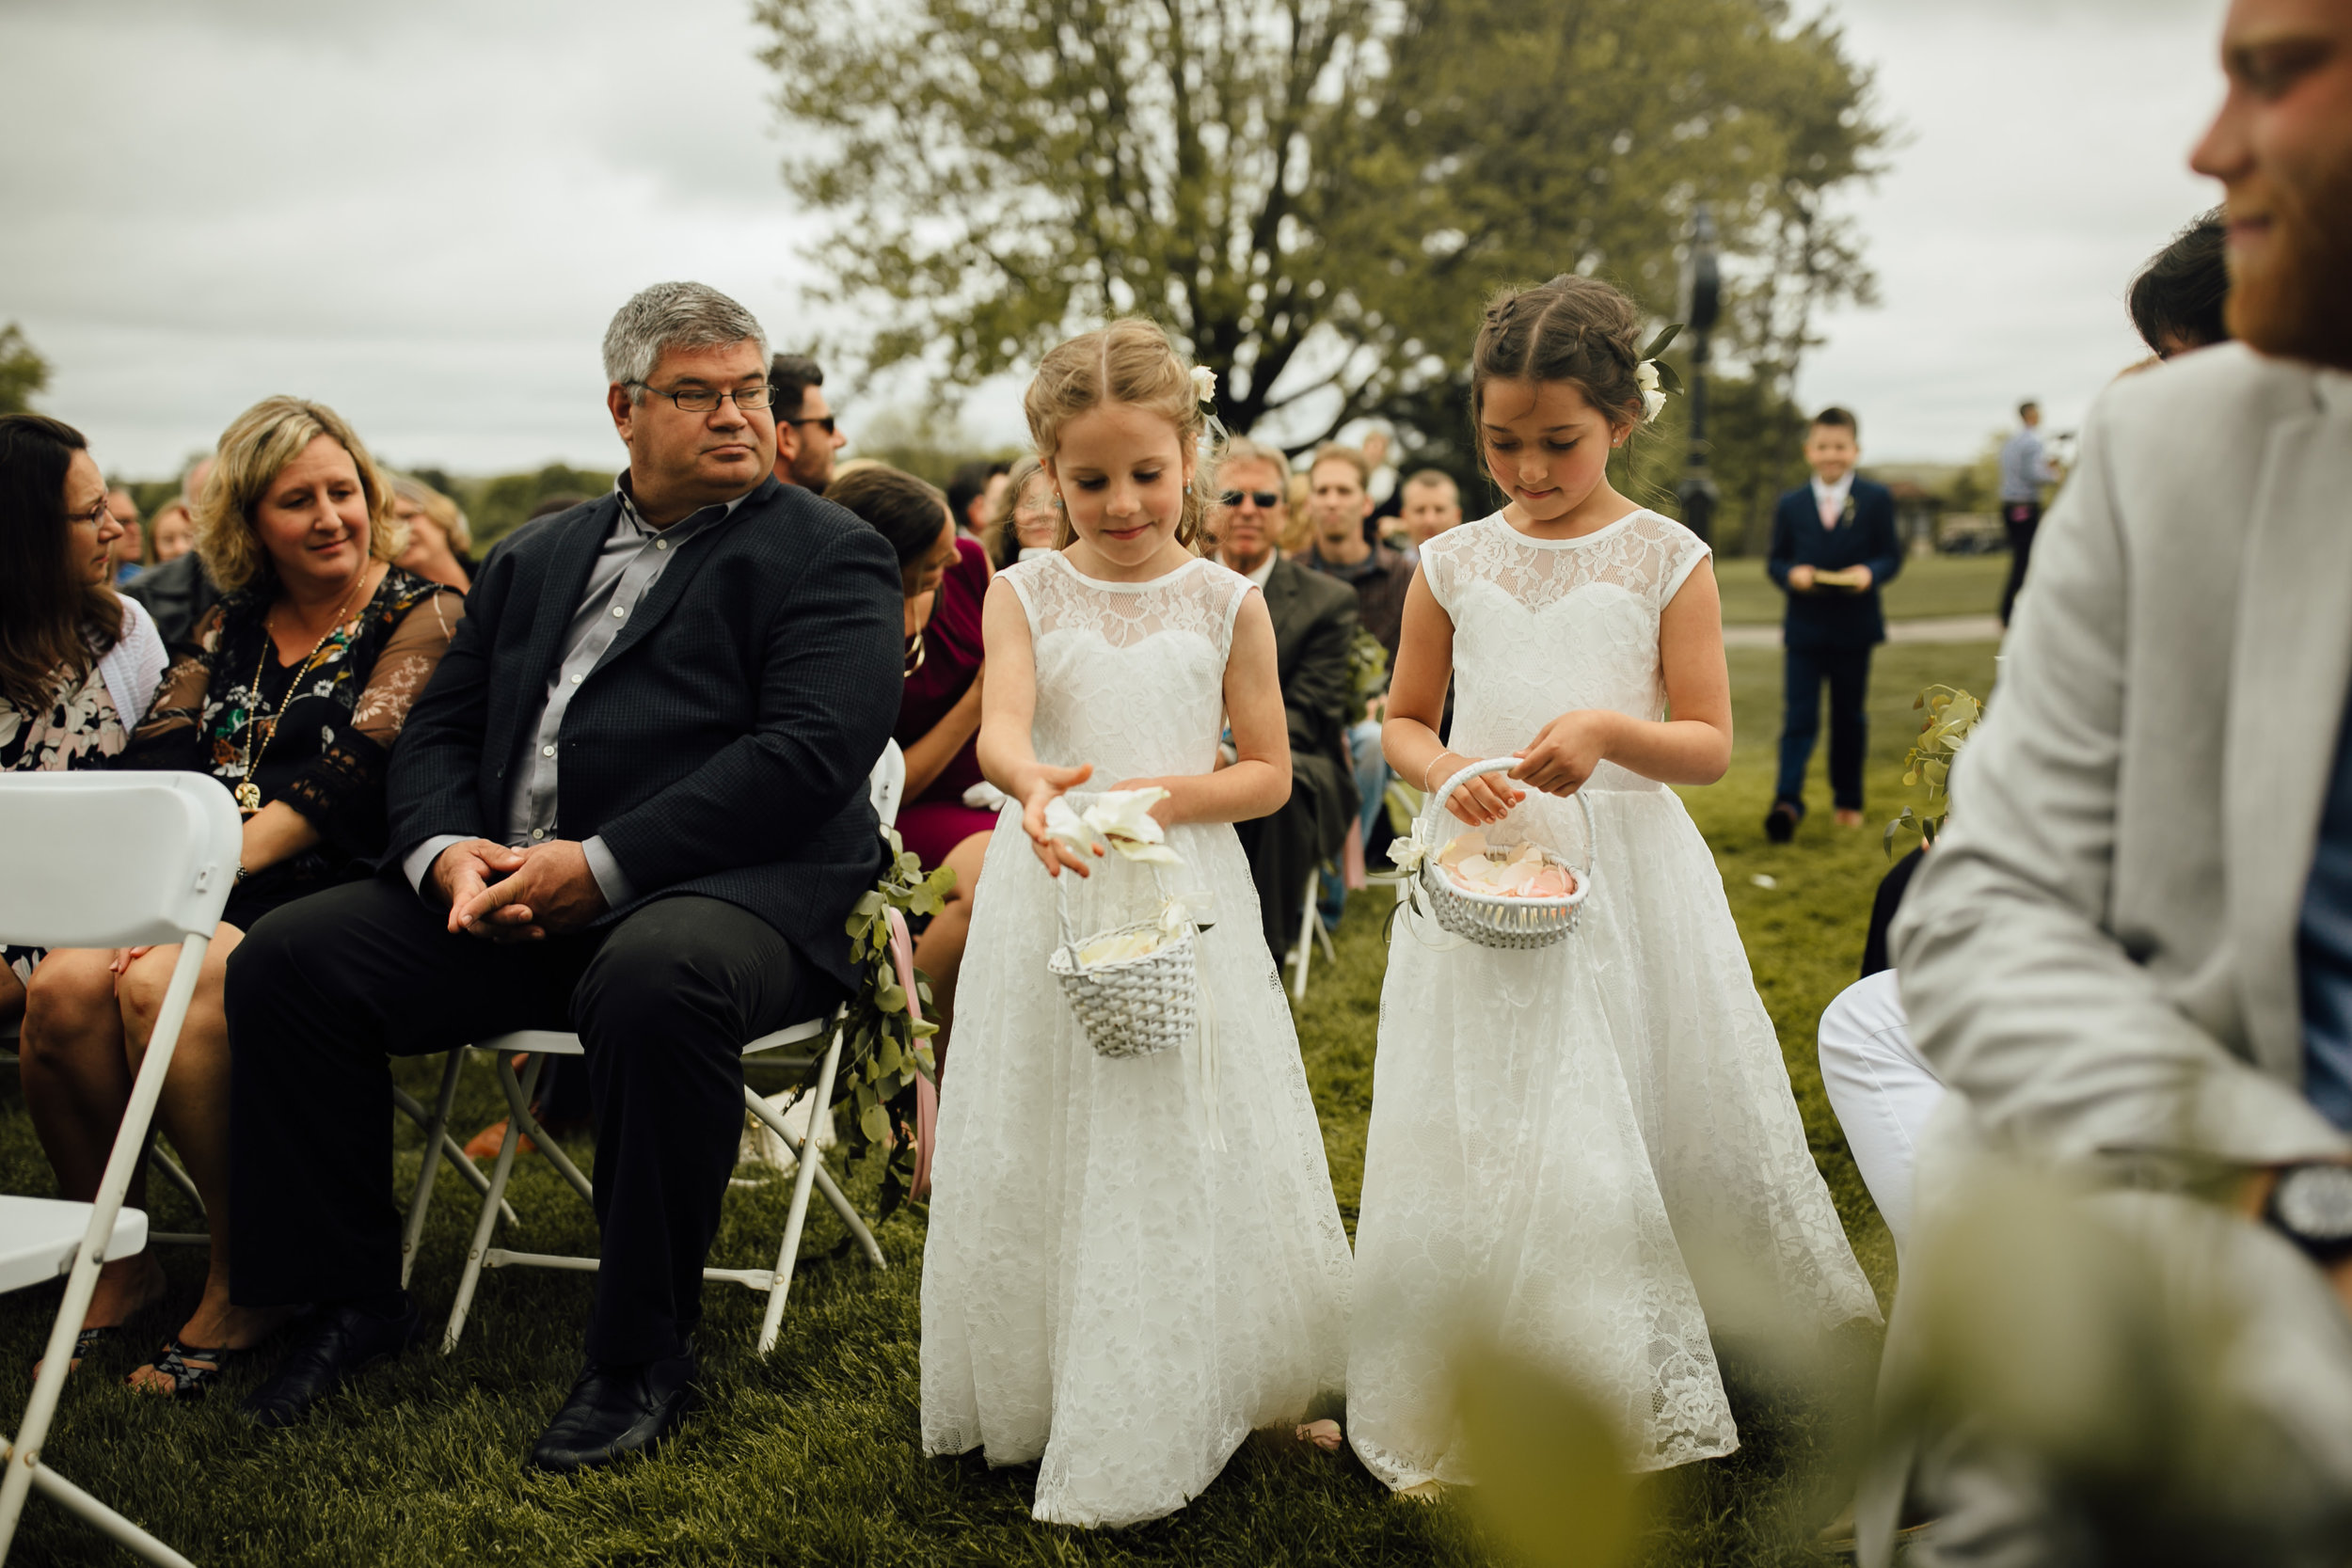 2018-5-Sammi-Travis-Ceremony-Grand-Rapids-Michigan-Wedding-Photographer-100.jpg